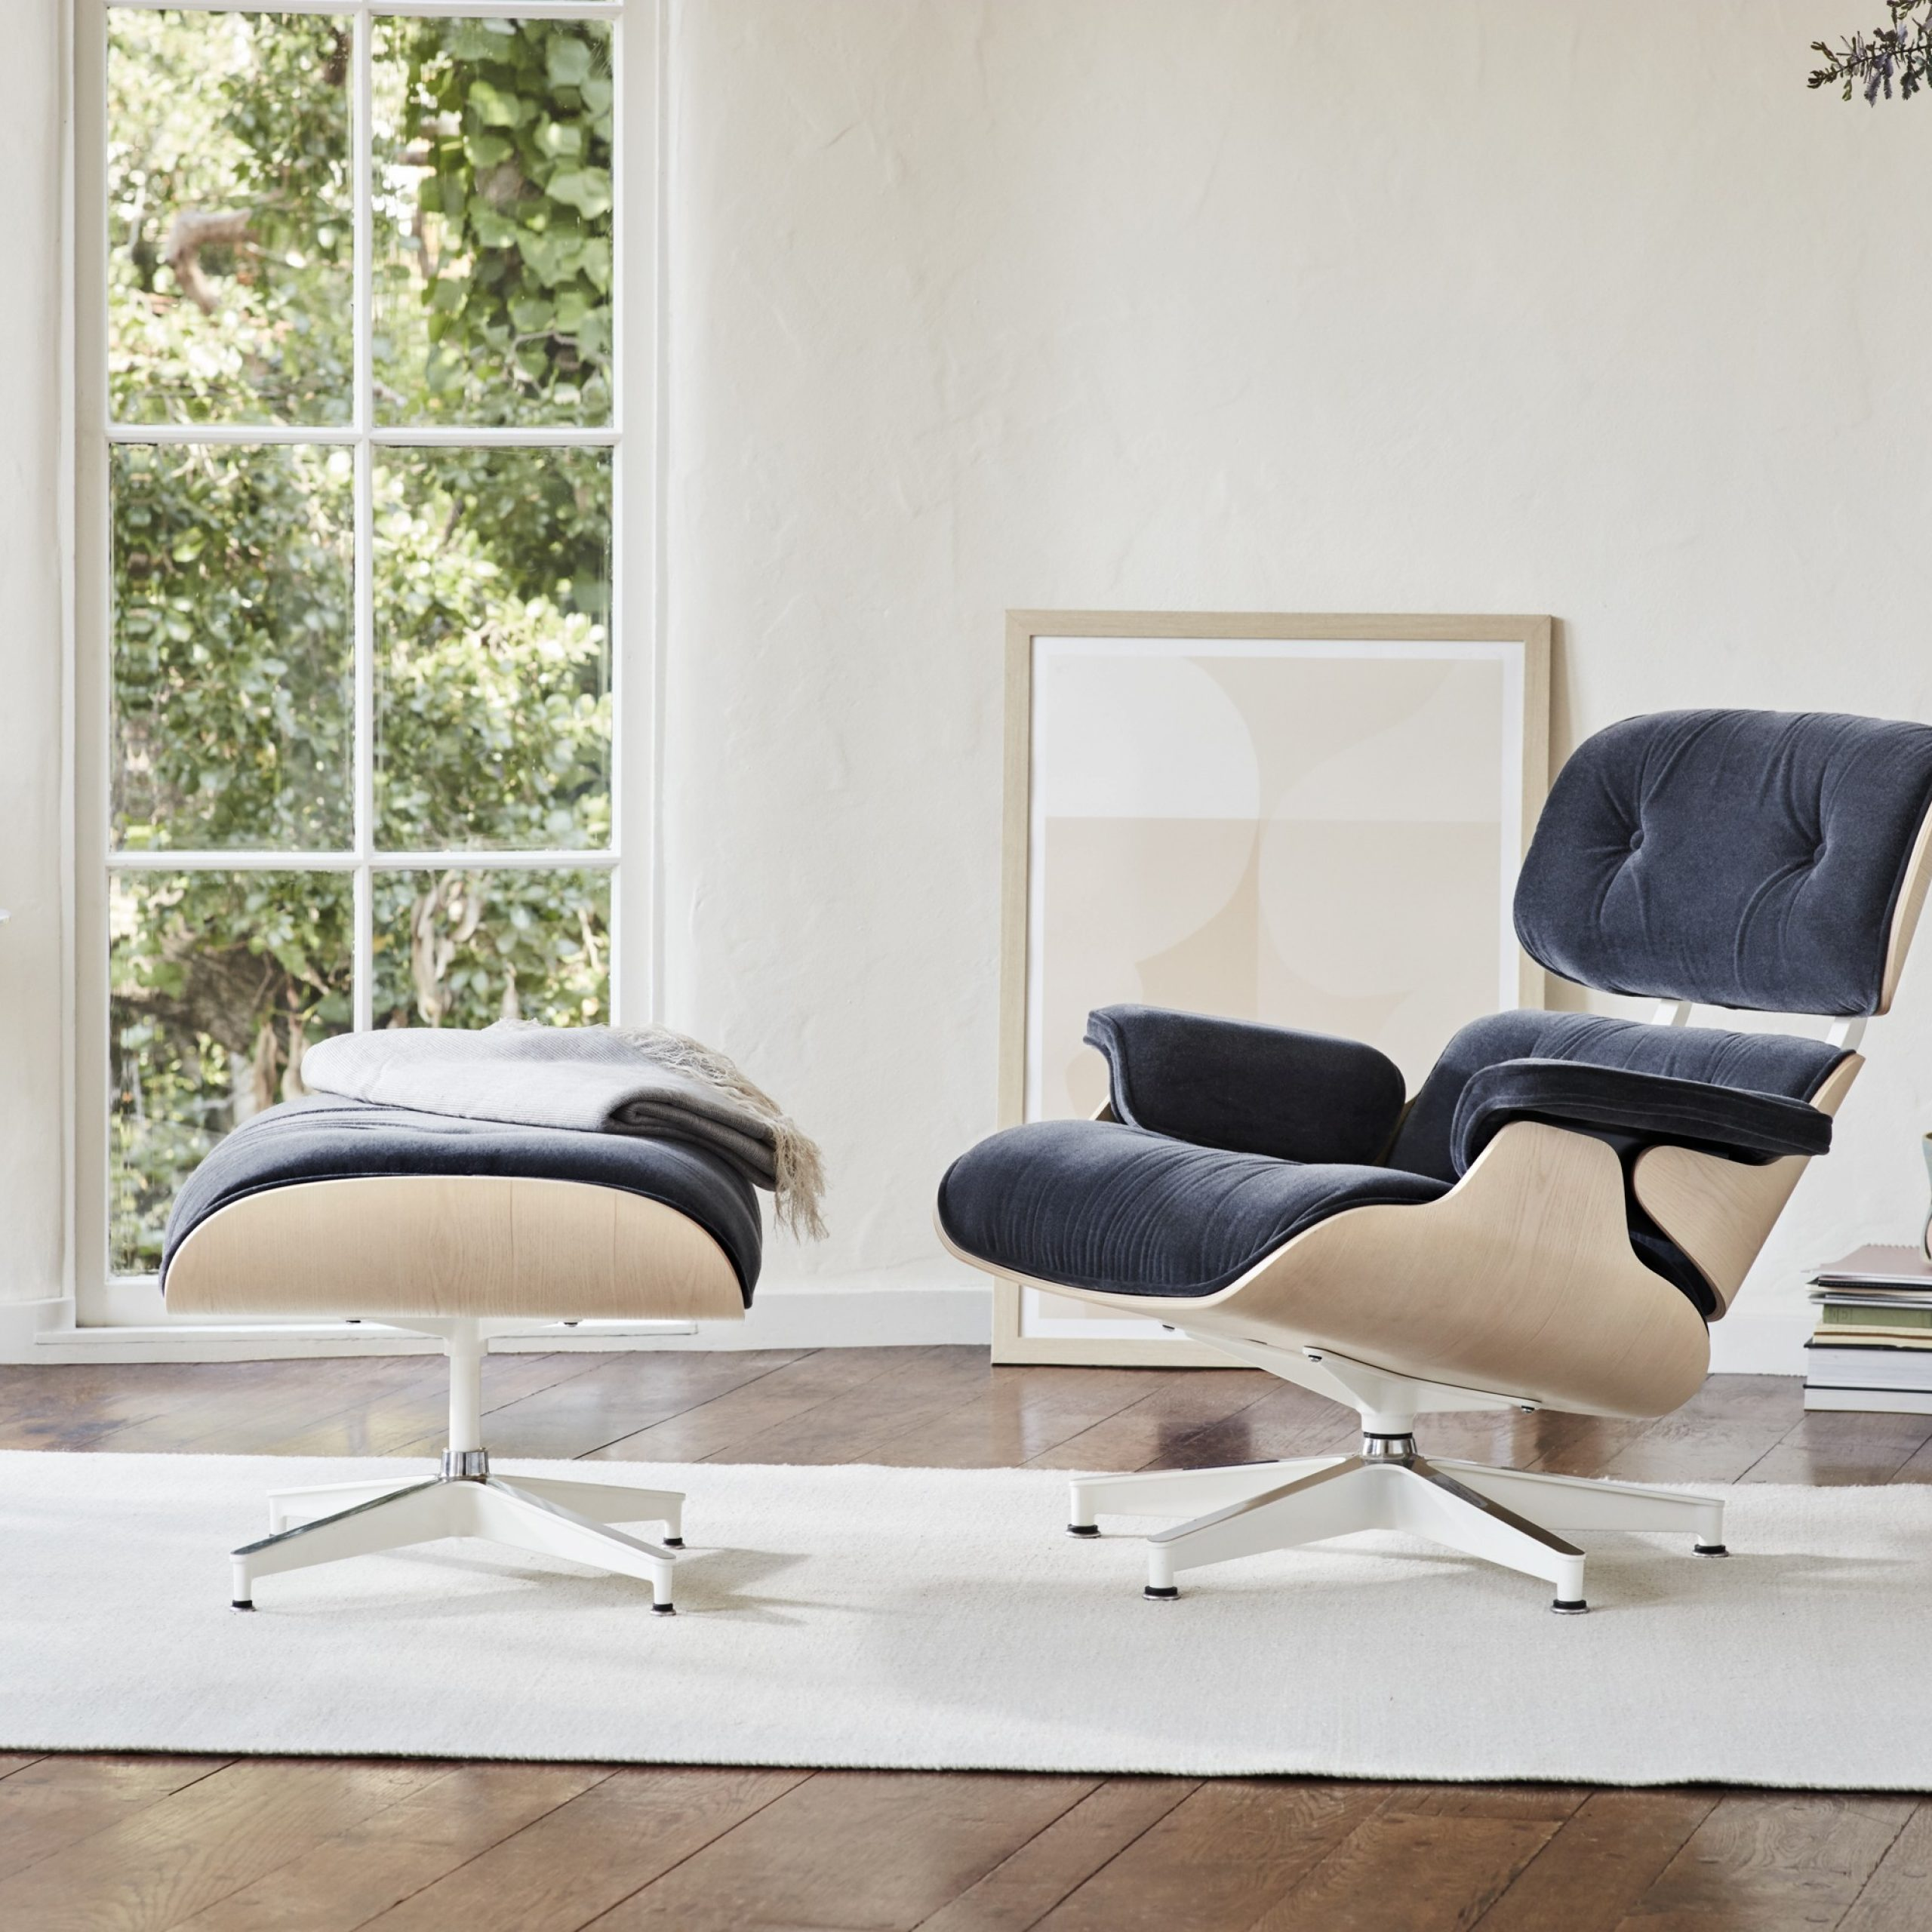 Eames Lounge Chair With Regard To Armory Fabric Armchairs (View 8 of 15)